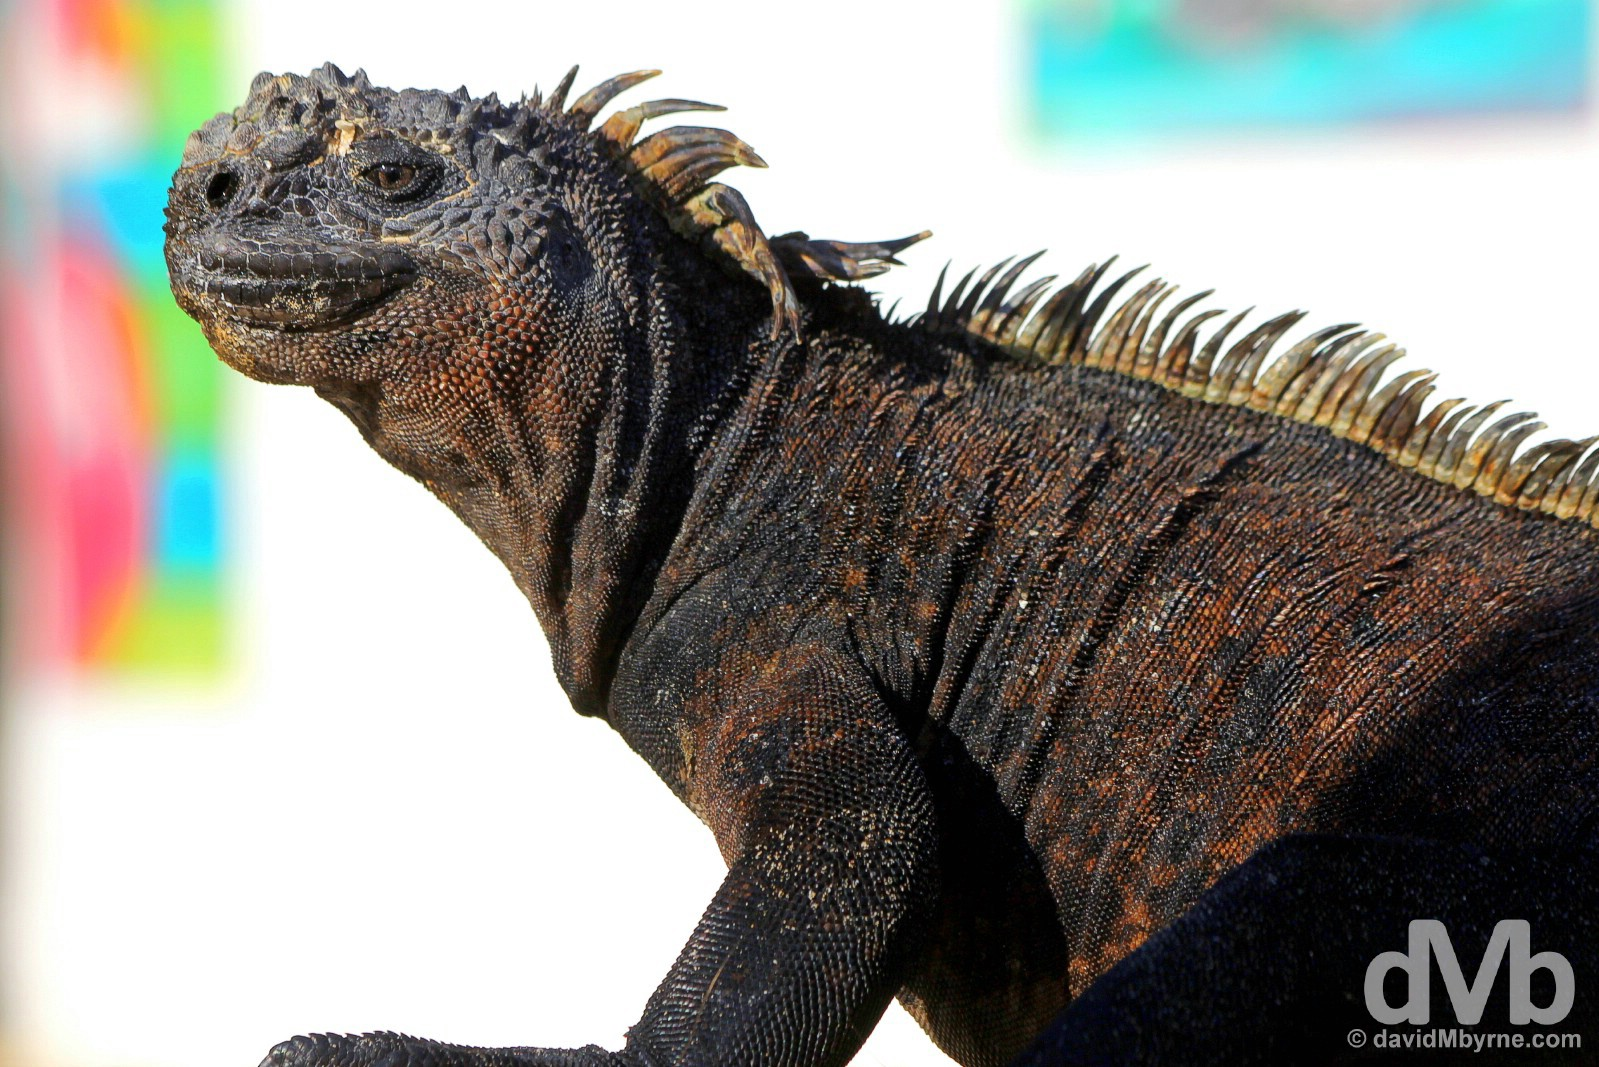 A Marine Iguana basking in the sun on a beach outside Puerto Villamil, Isla Isabela, Galapagos Islands, Ecuador. July 19, 2015.